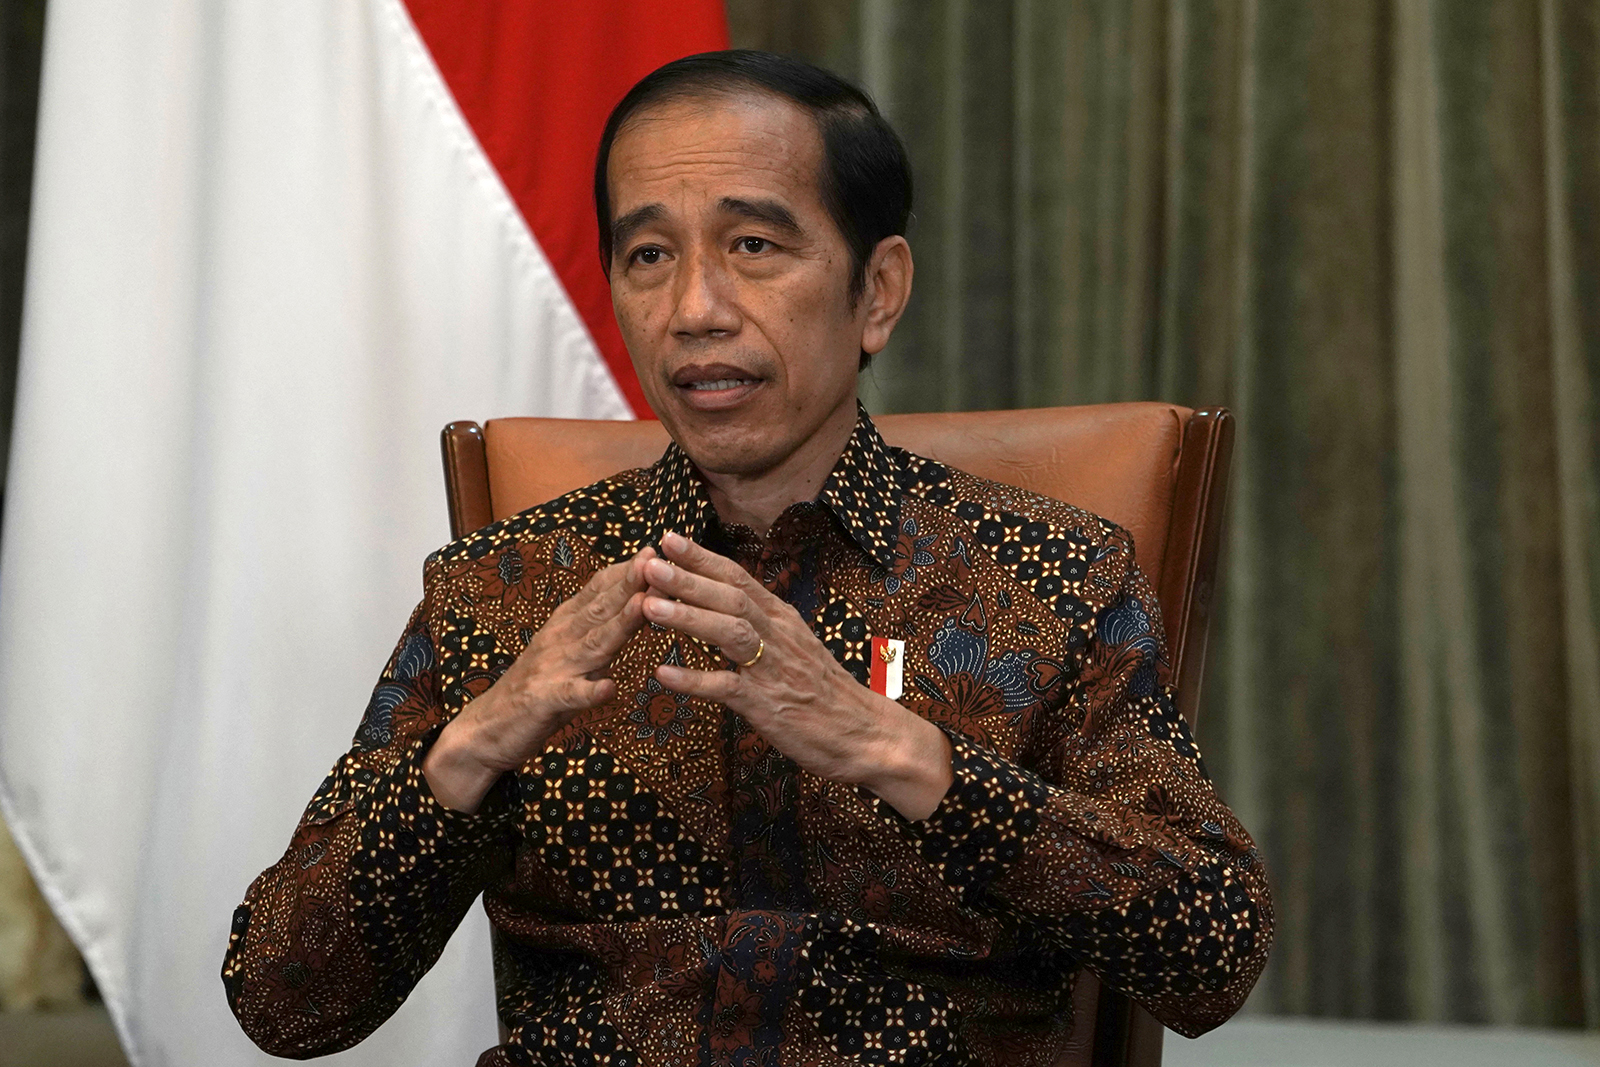 Joko Widodo, Indonesia's President, speaks during an interview at the Presidential Palace in Jakarta, Indonesia, on April 7.